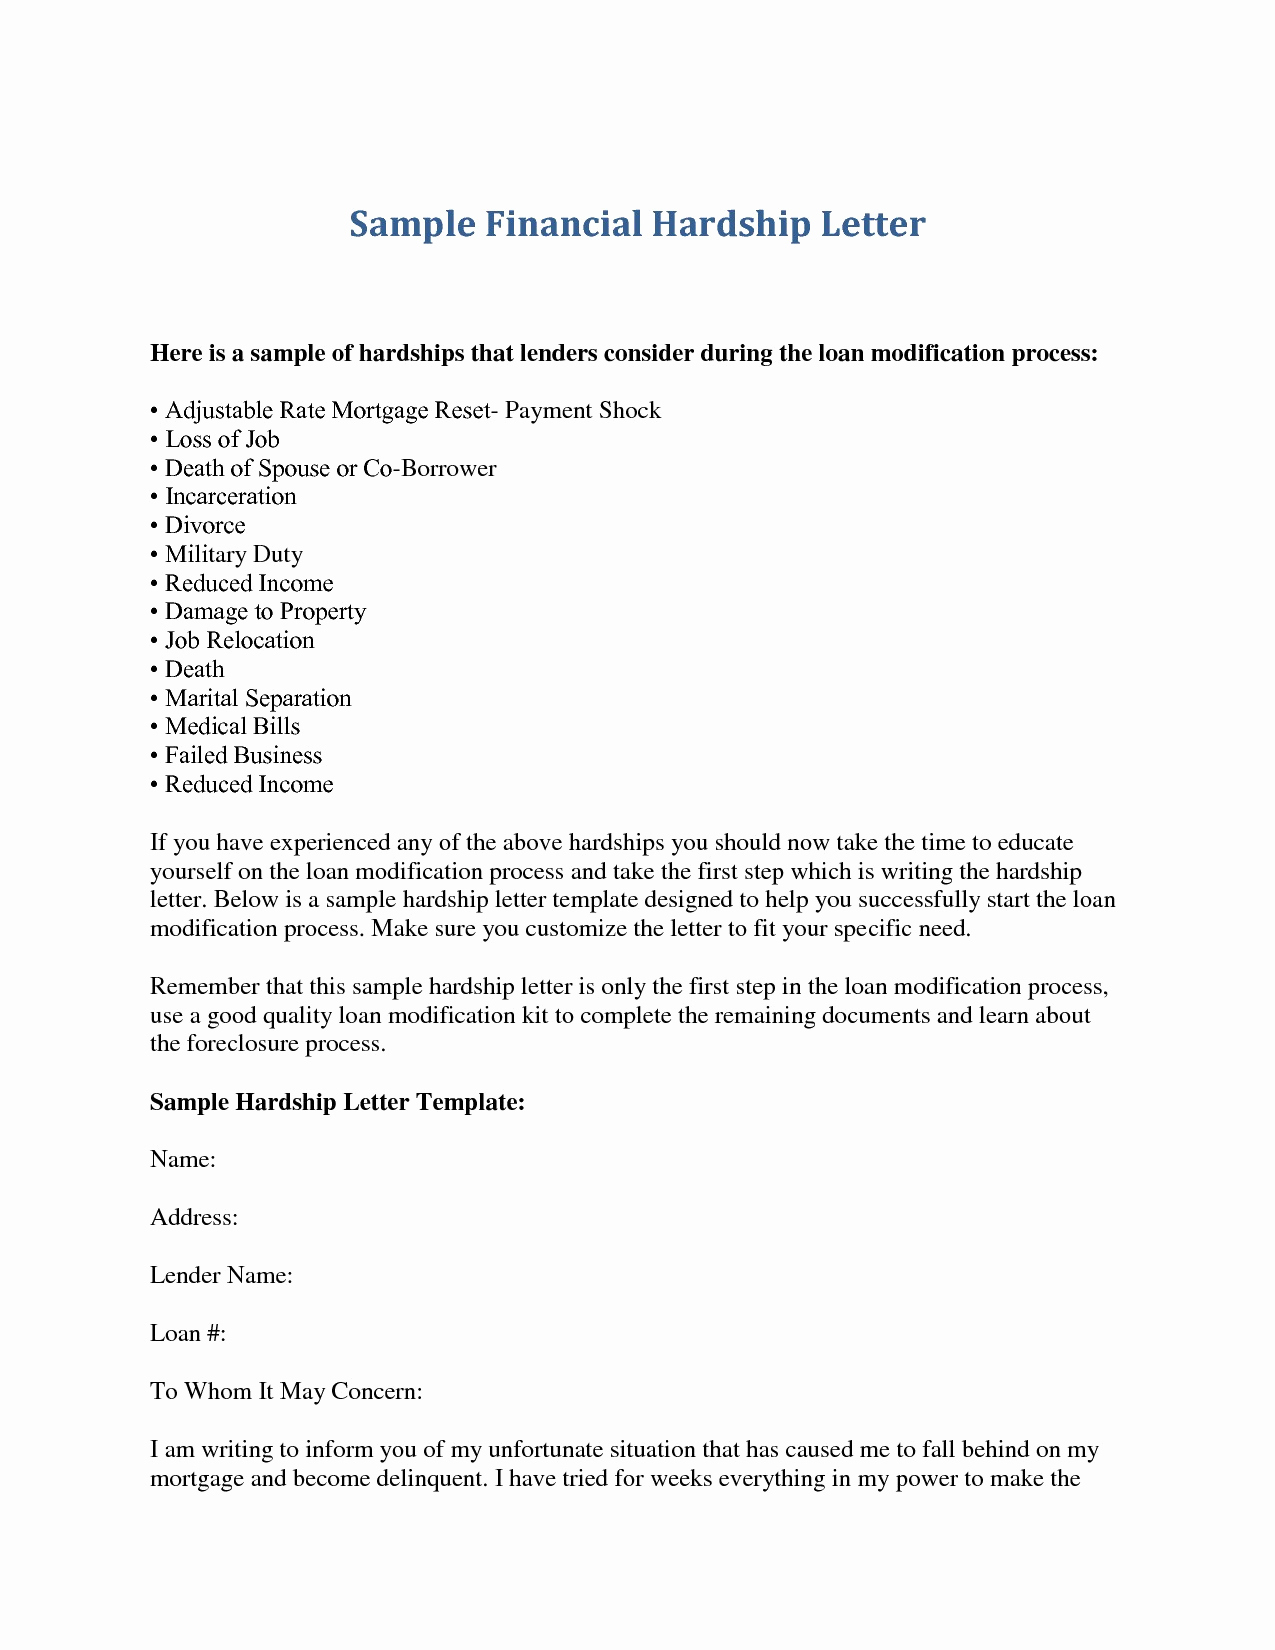 mortgage hardship letter template Collection-financial hardship letter template financial hardship letter template fresh best hardship letter for financial assistance 18r 2-d